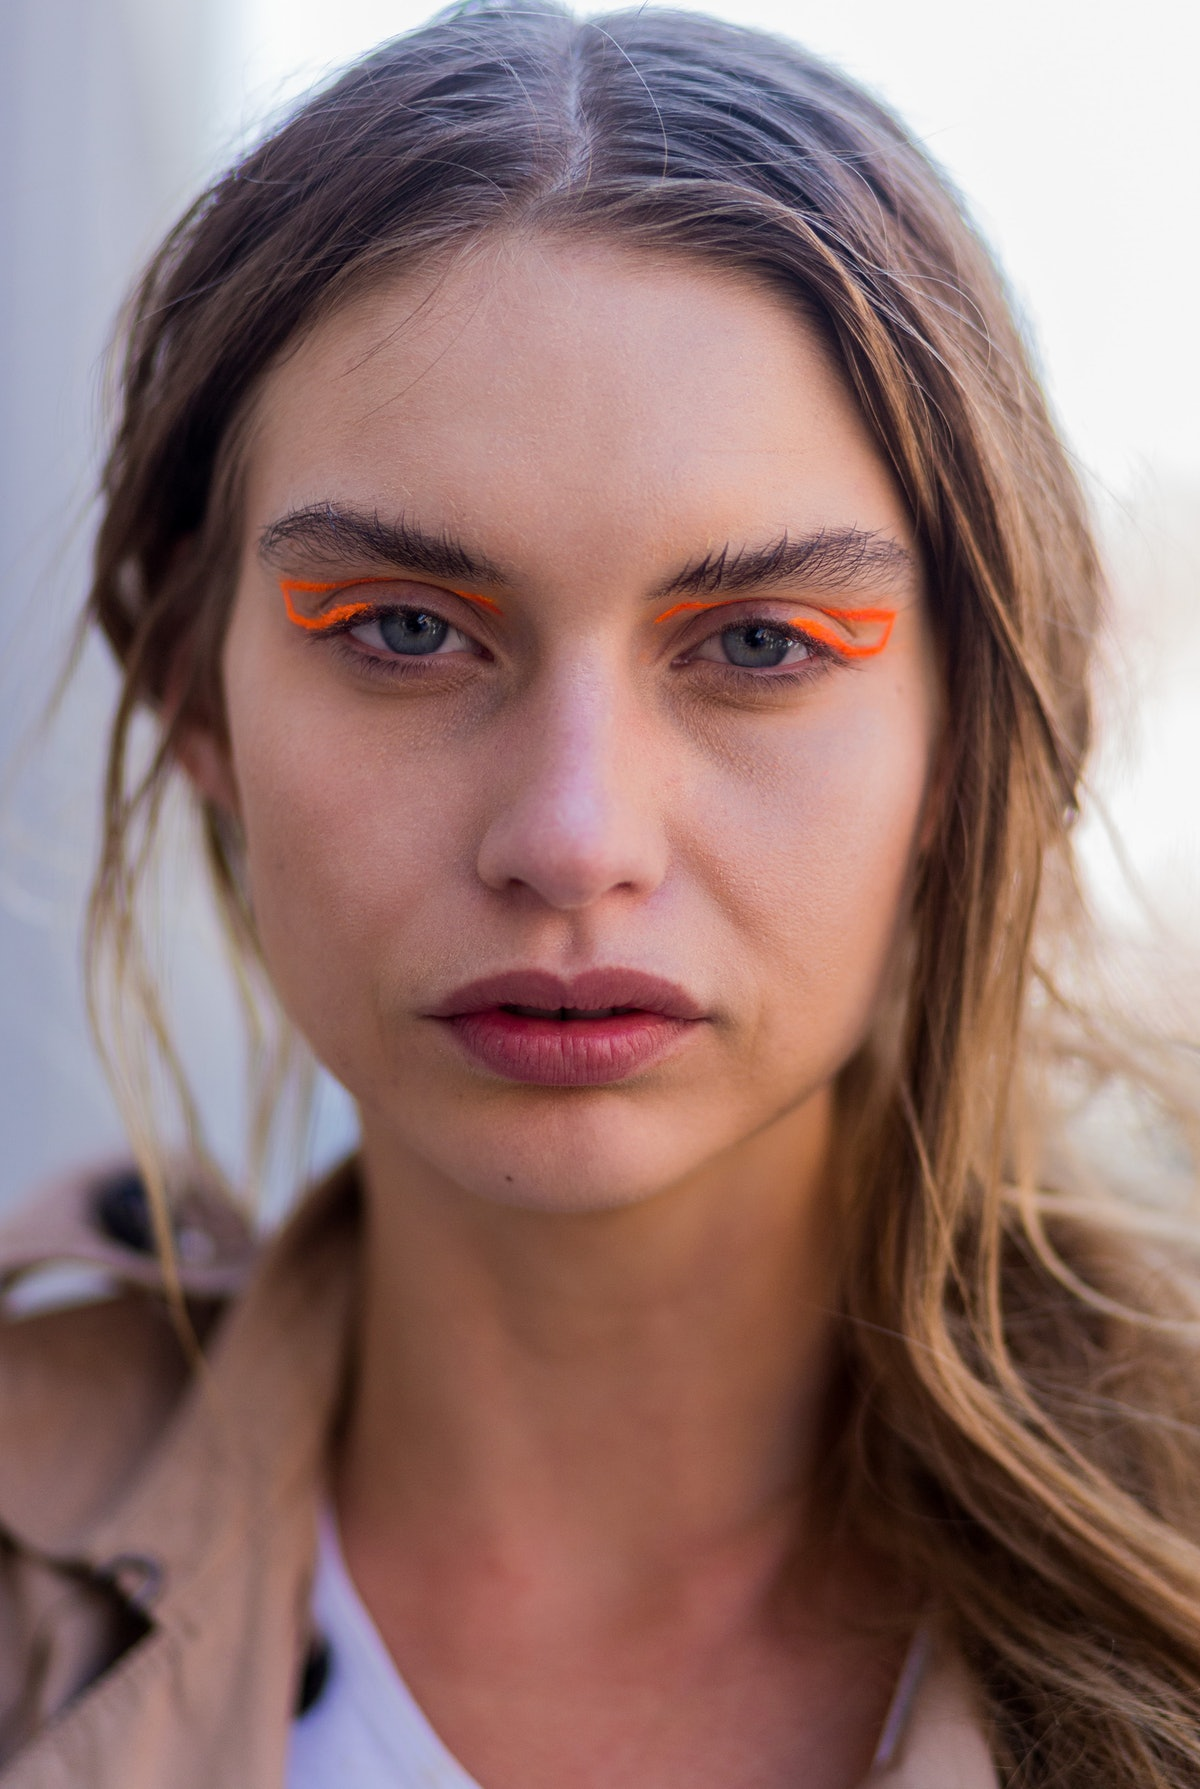 A white young model demonstrates how to wear bright orange graphic eyeliner